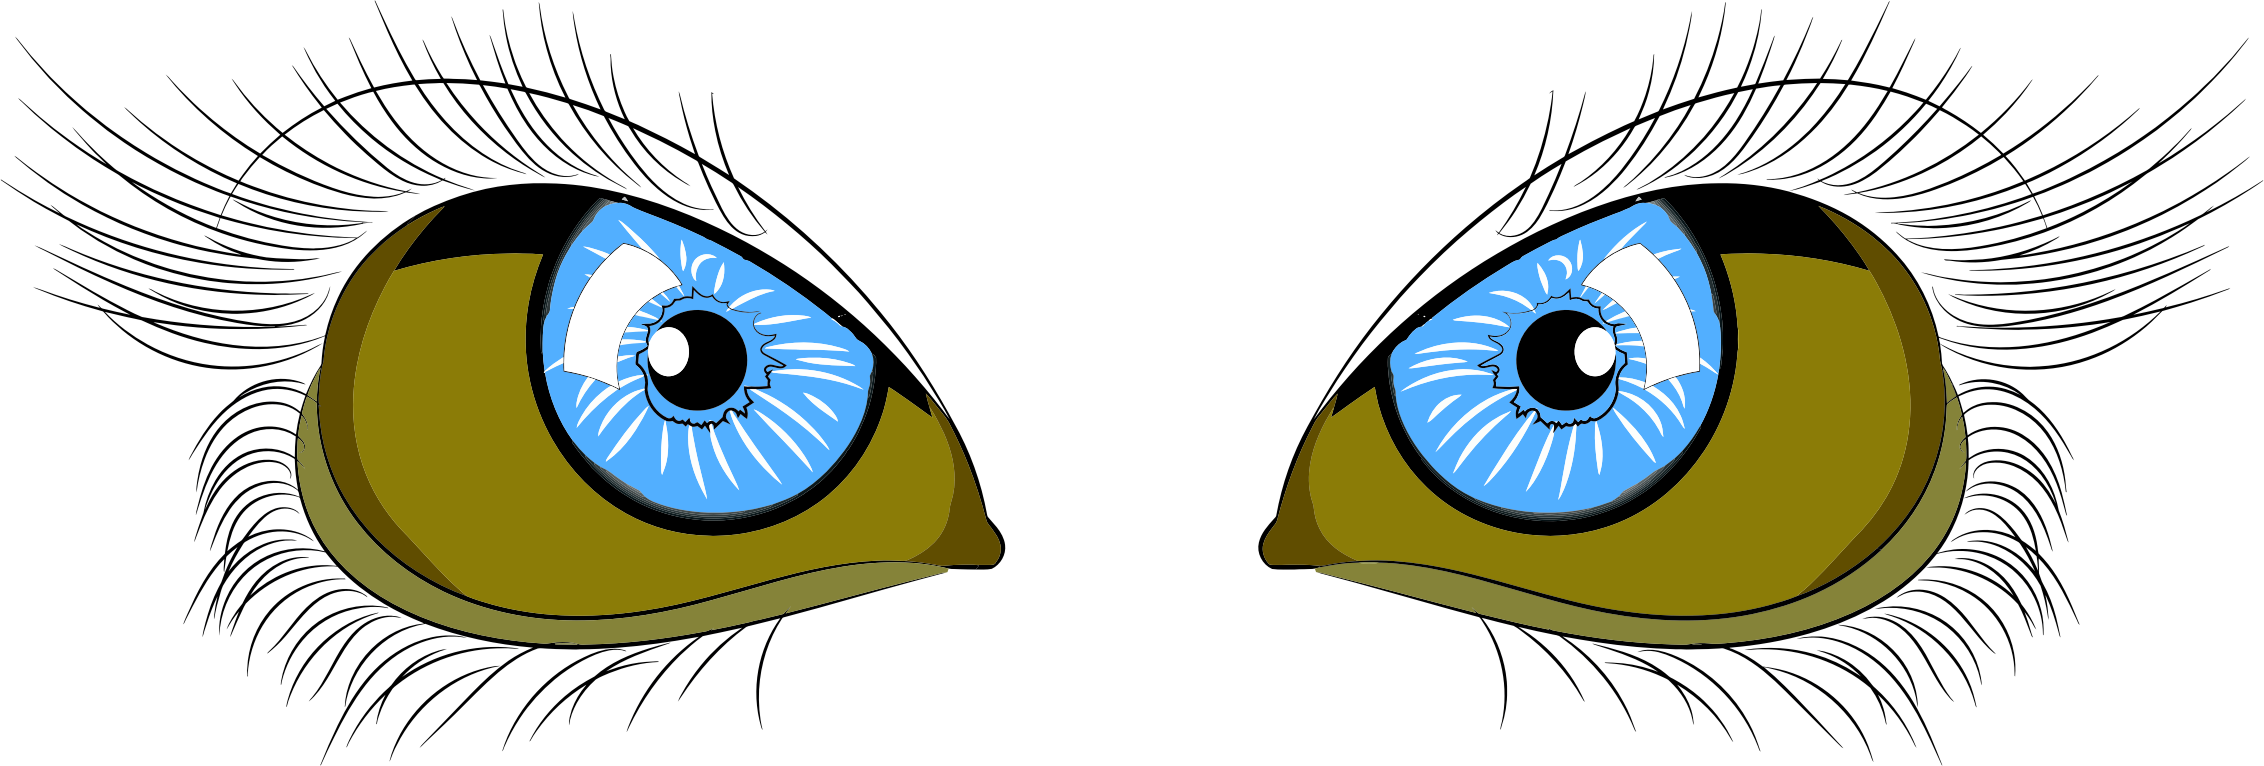 Eyes big image png. Eyebrow clipart blue eye png freeuse library